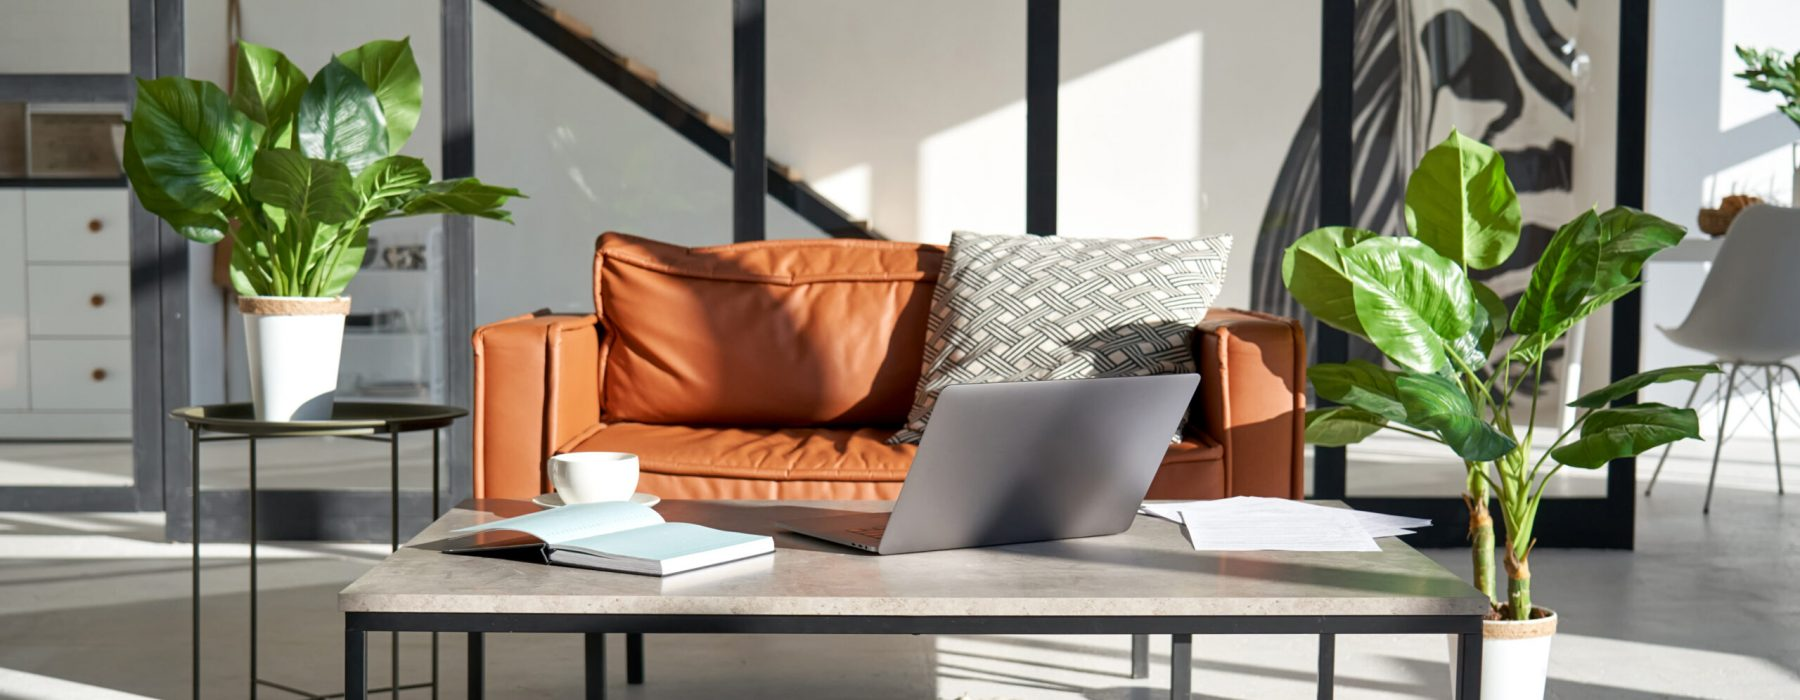 Modern sunny living room interior design with home office workplace and sofa.